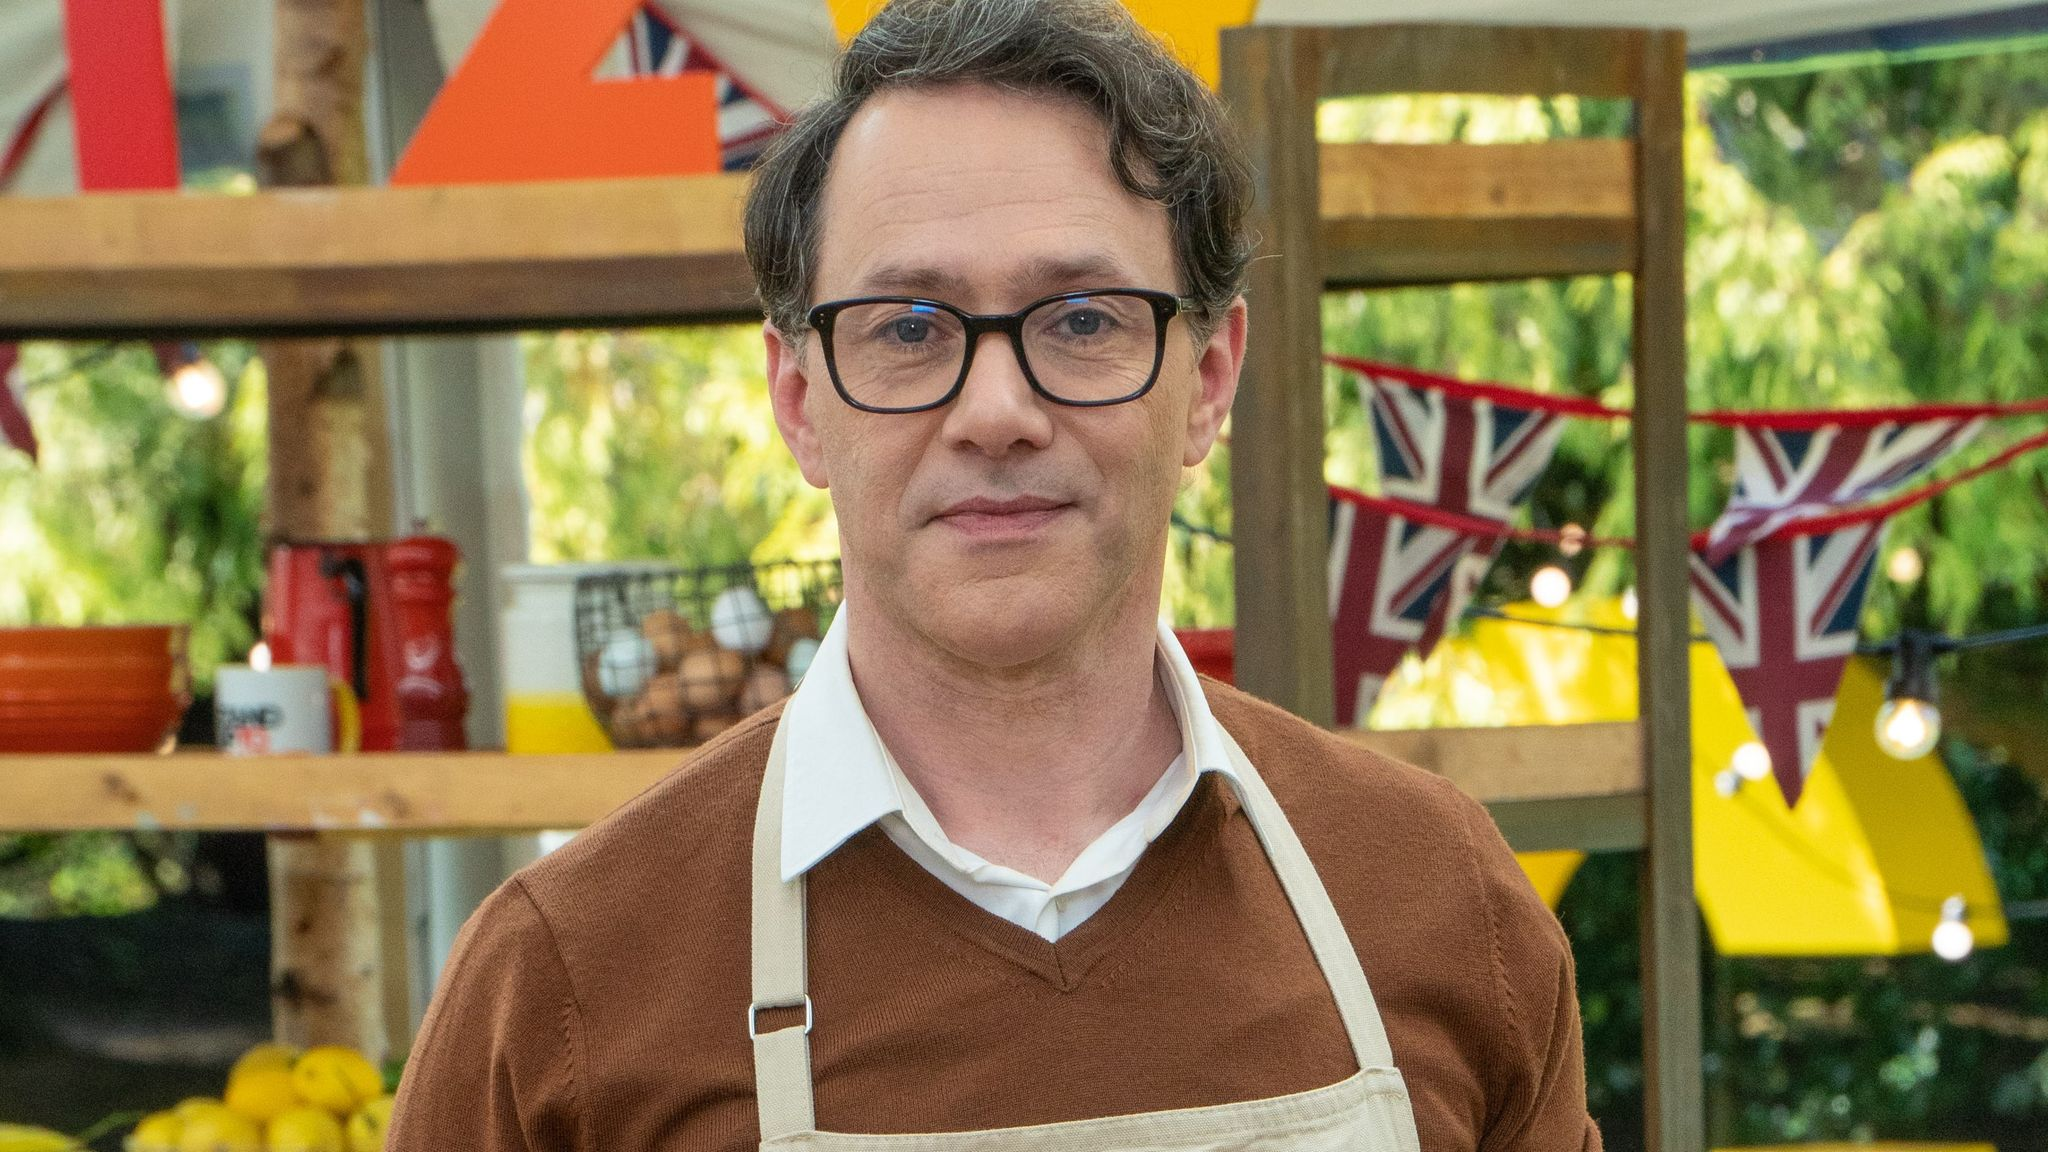 Reece Shearsmith is taking part in The Great Celebrity Bake Off. Pic: Channel 4